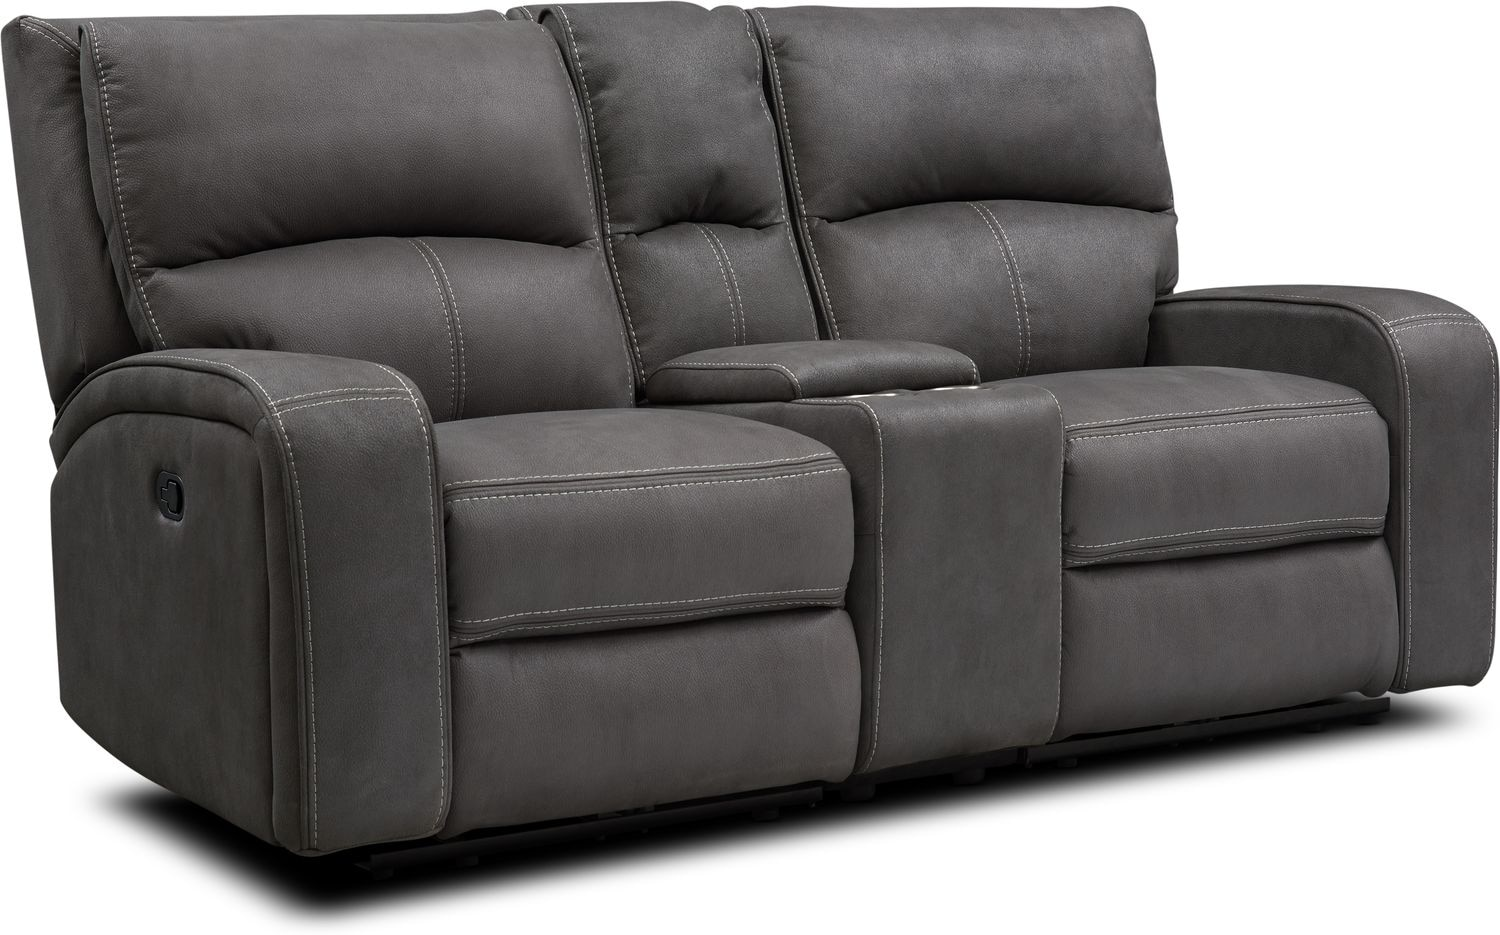 Living Room Furniture - Burke Manual Reclining Loveseat with Console